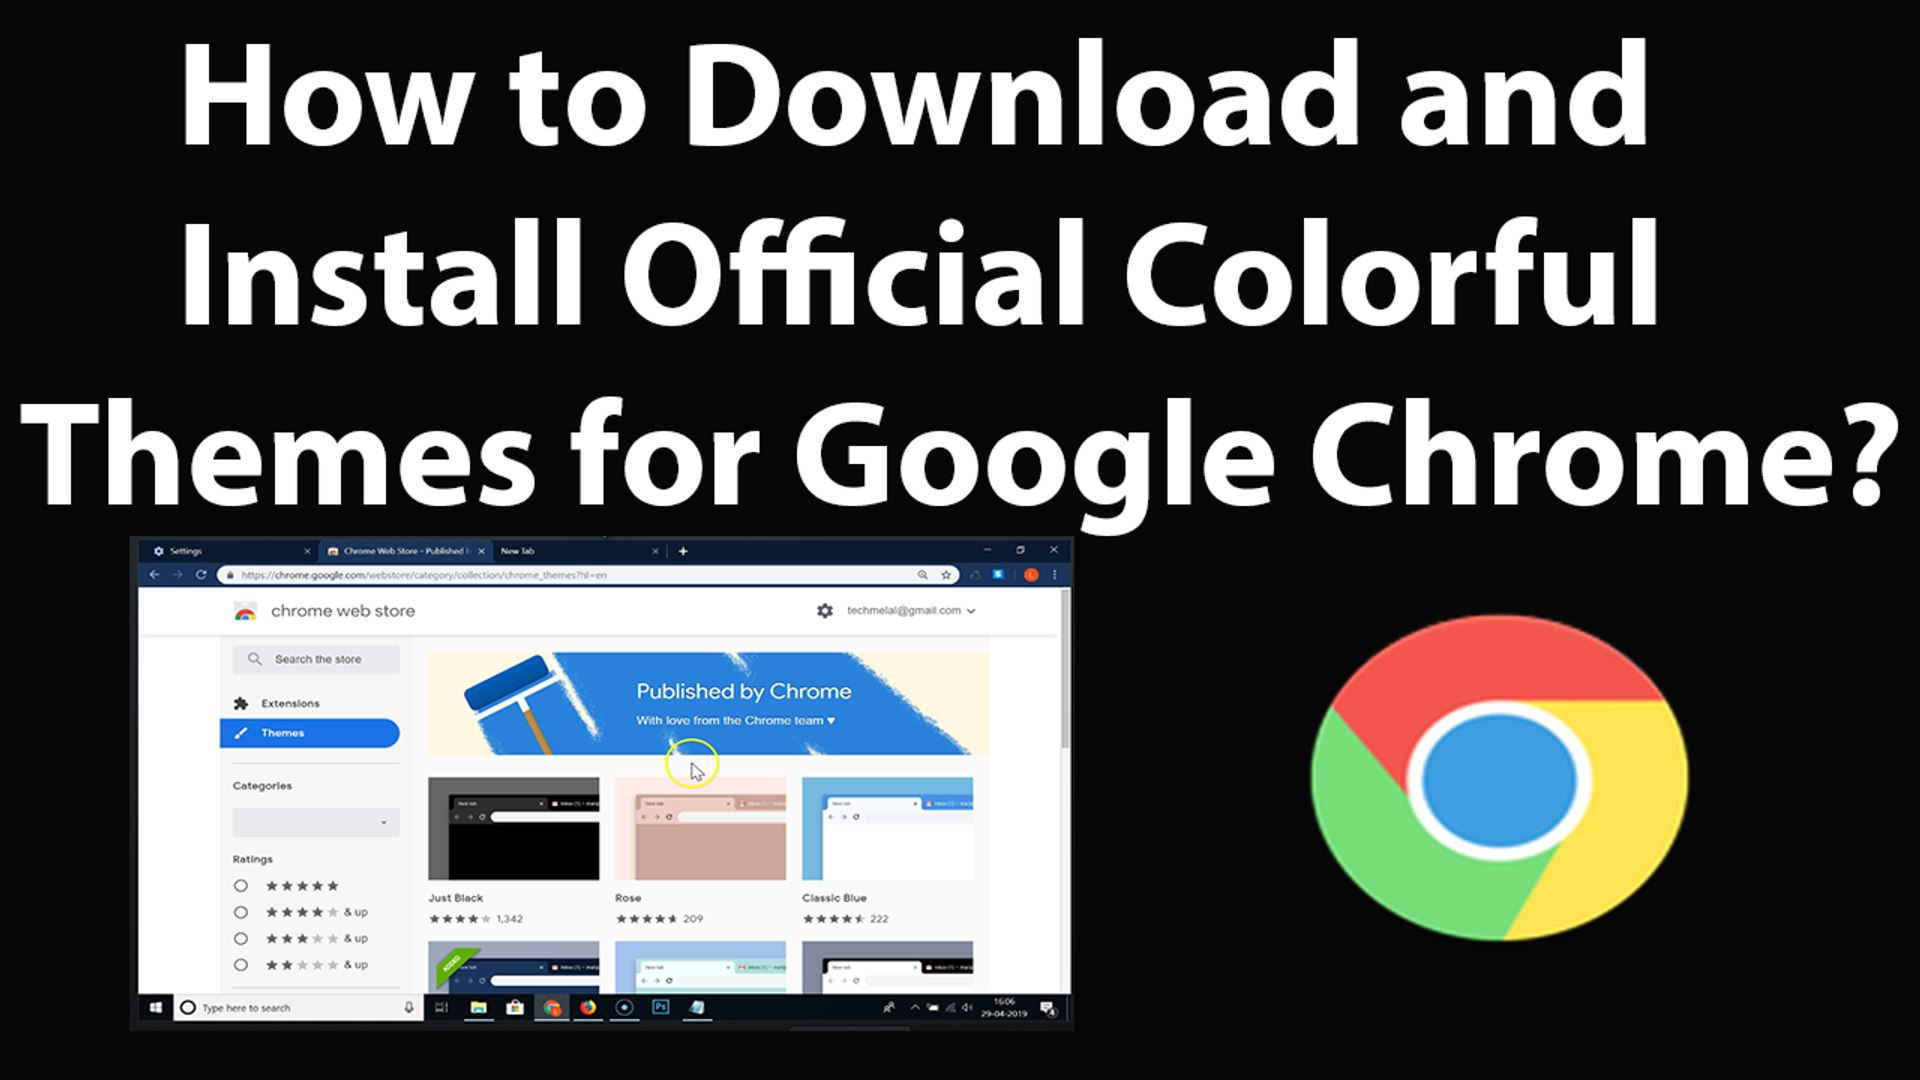 How to Download and Install Official Colorful Themes for Google Chrome?